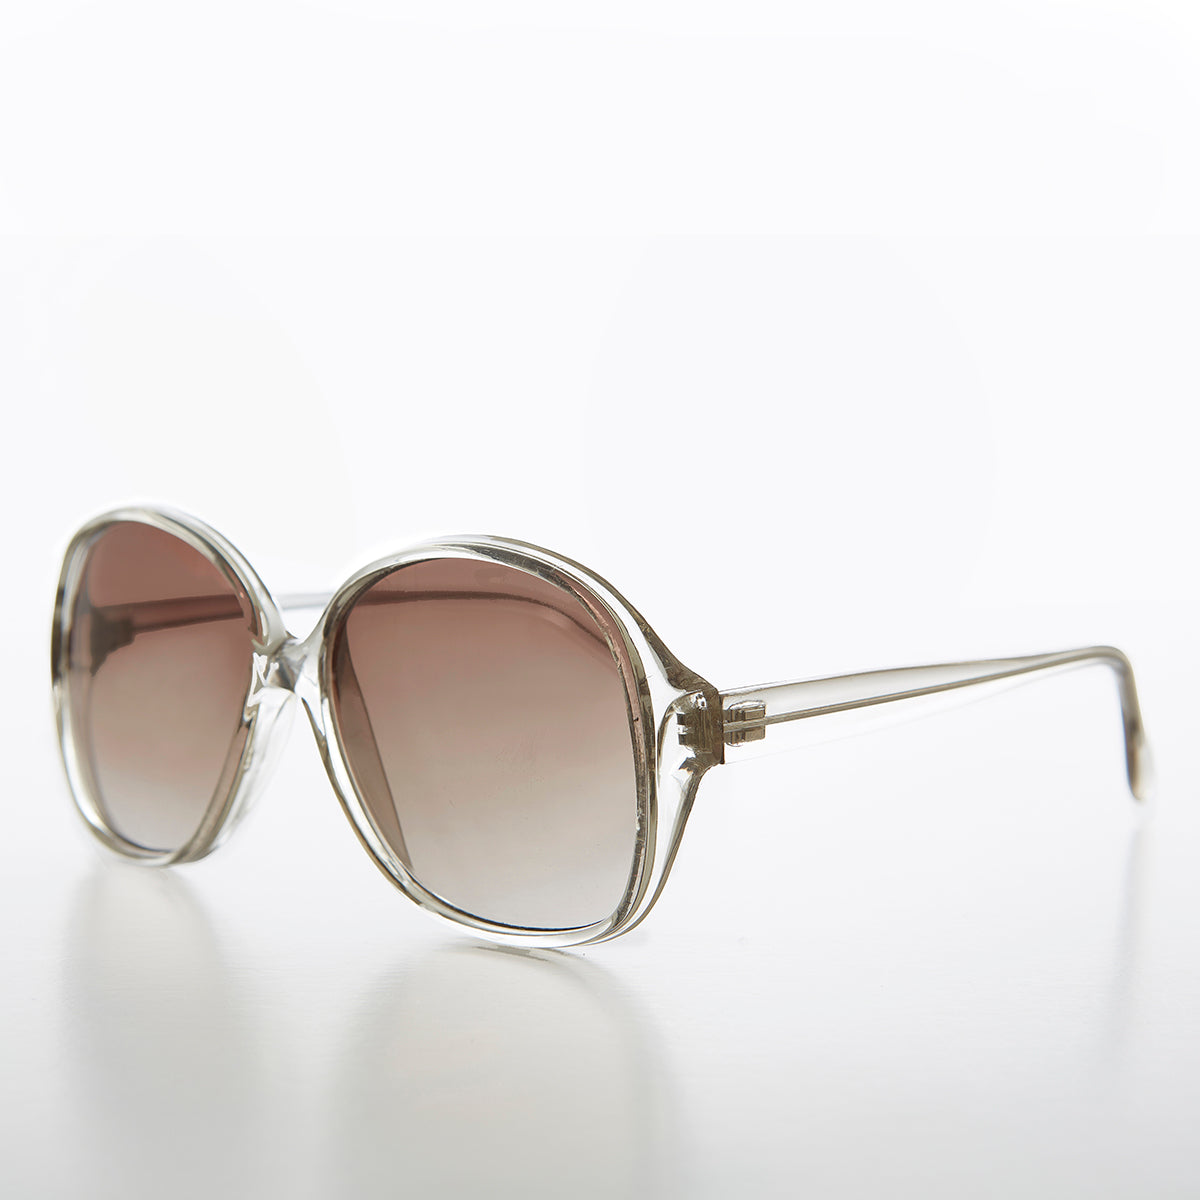 Oversize Square Retro Women's Sunglass with Gradient Lens